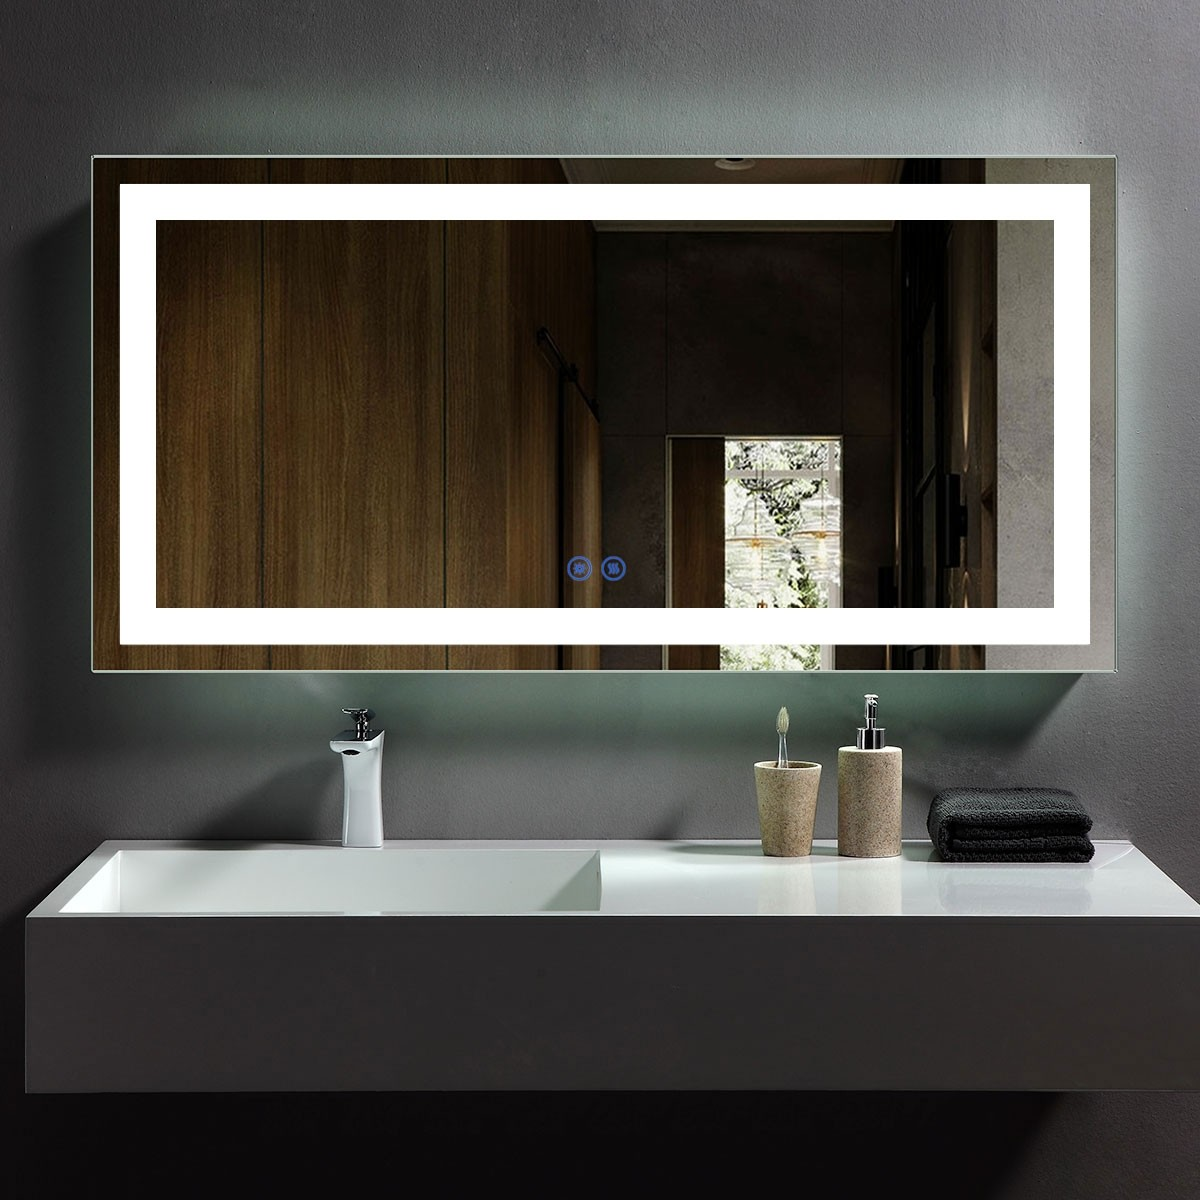 DECORAPORT 48 x 24 Inch LED Bathroom Mirror/Dress Mirror with Touch Button, Anti Fog, Dimmable, Vertical & Horizontal Mount (CT09-4824)